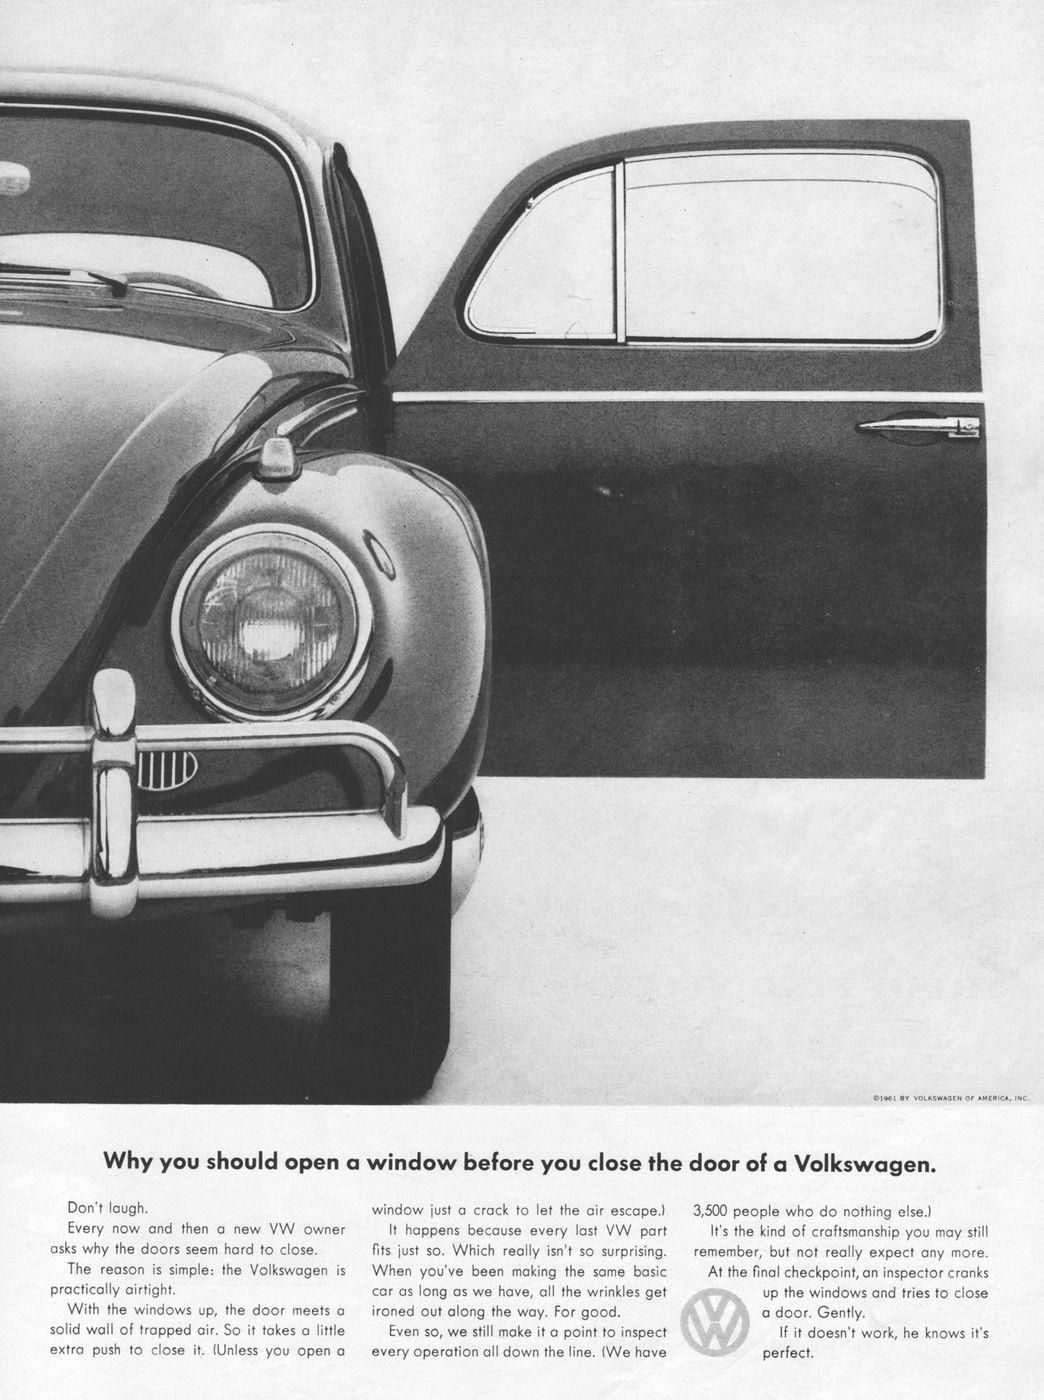 Vw Bug Airtight 1961 Ad Picture Volkswagonclassiccars Volkswagen Anuncios Vintage Vw Fusca